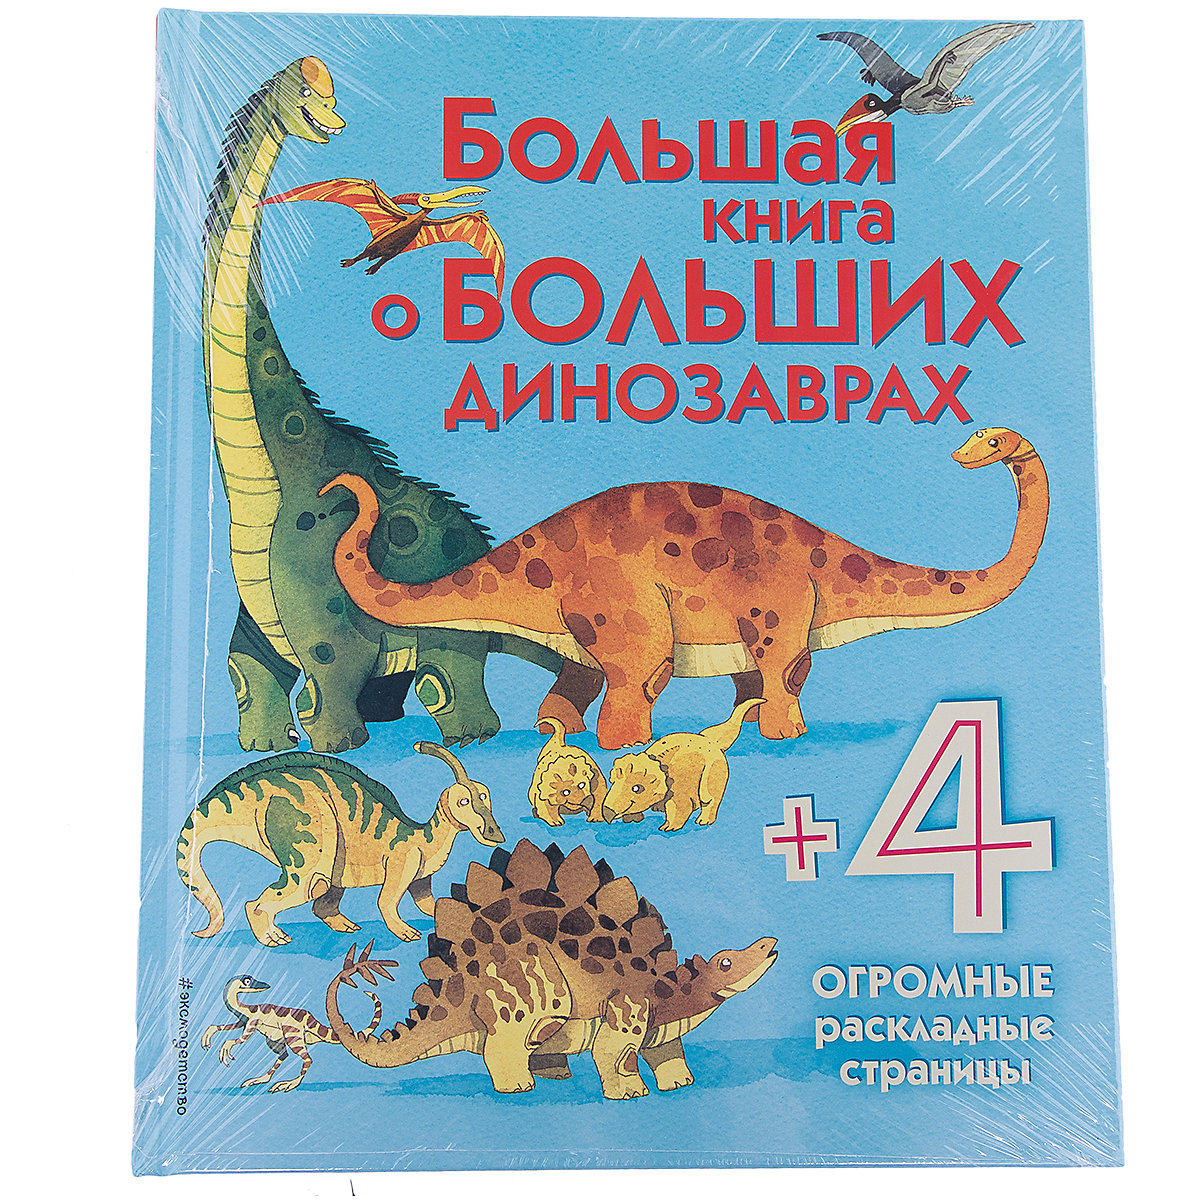 Books EKSMO 6877994 Children Education Encyclopedia Alphabet Dictionary Book For Baby MTpromo